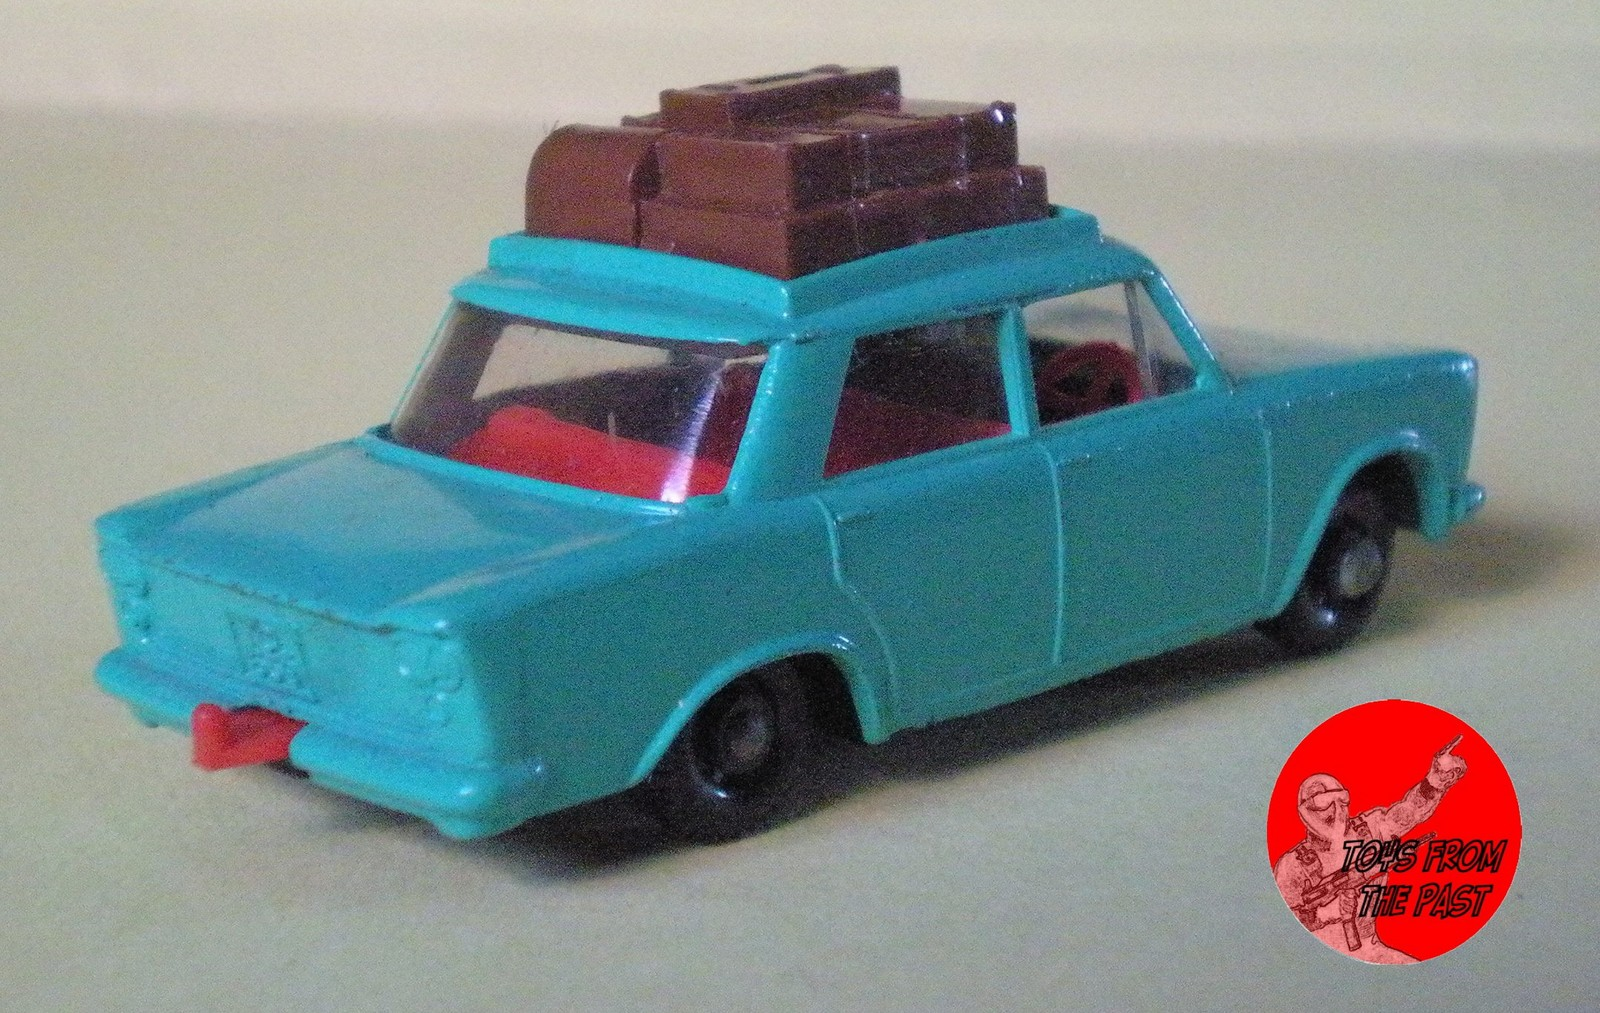 The Real Car >> Toys from the Past: #199 MATCHBOX – CHEVROLET IMPALA TAXI, 8-WHEEL CRANE, LINCOLN CONTINENTAL ...